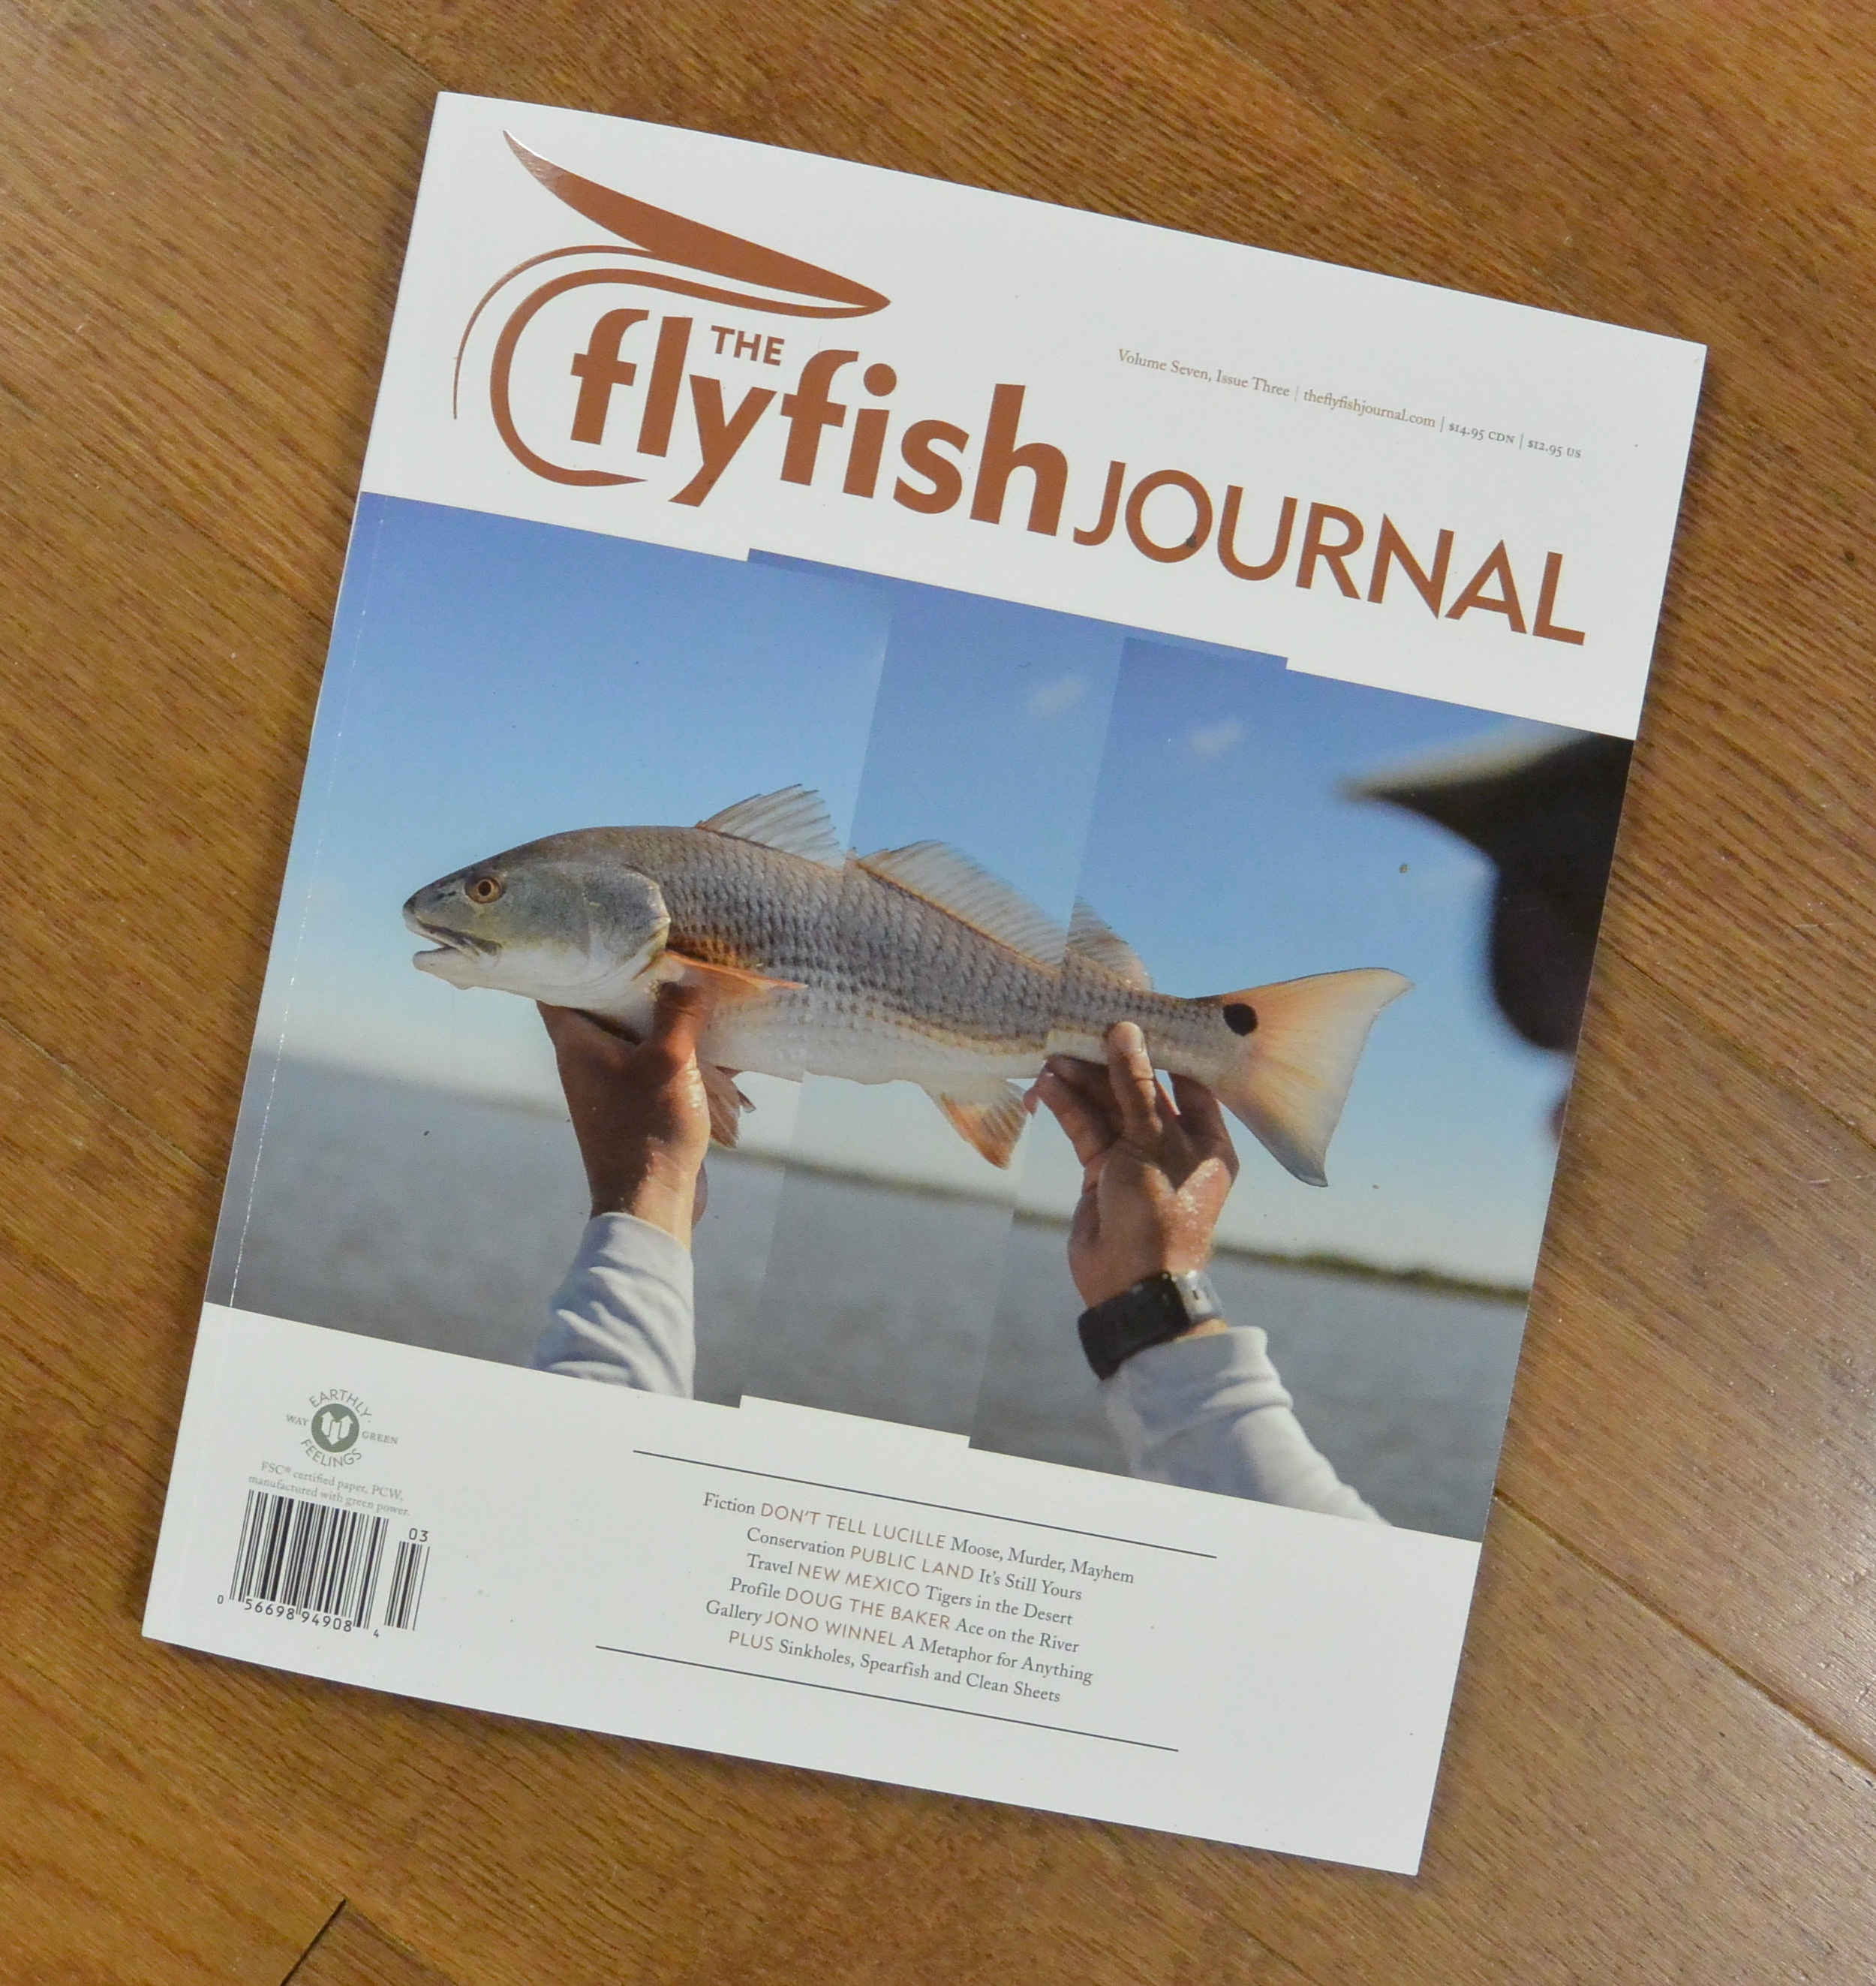 FlyFish Journal - Go to Illustrations for more images